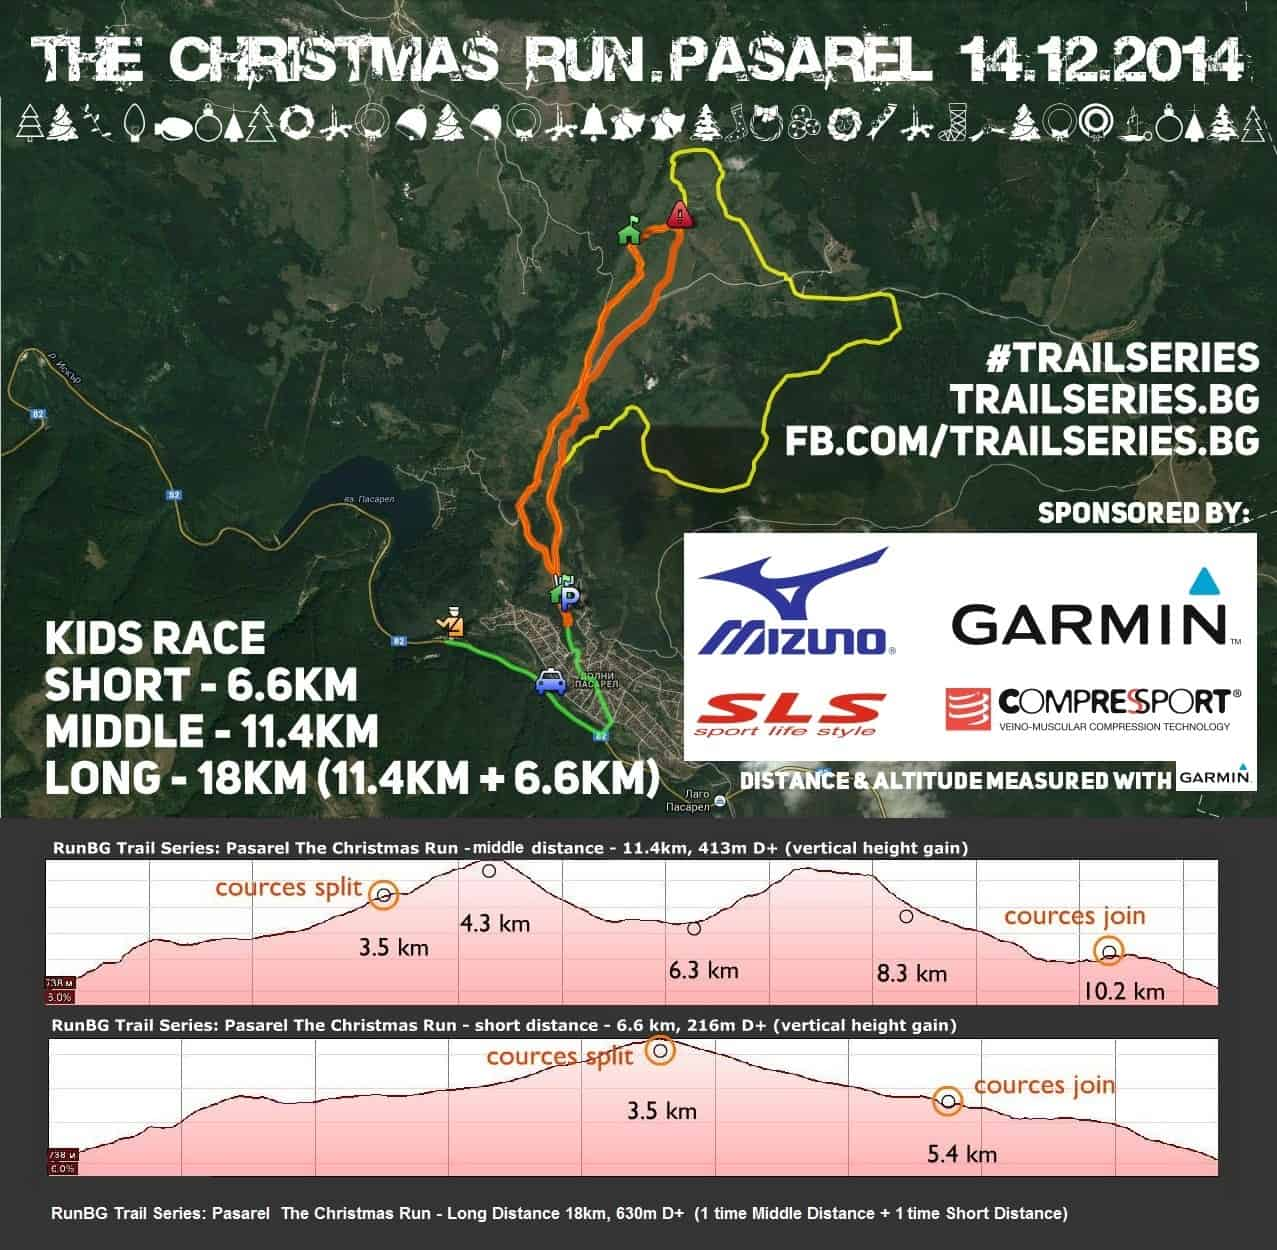 Trail Series The Christmas Run MAP